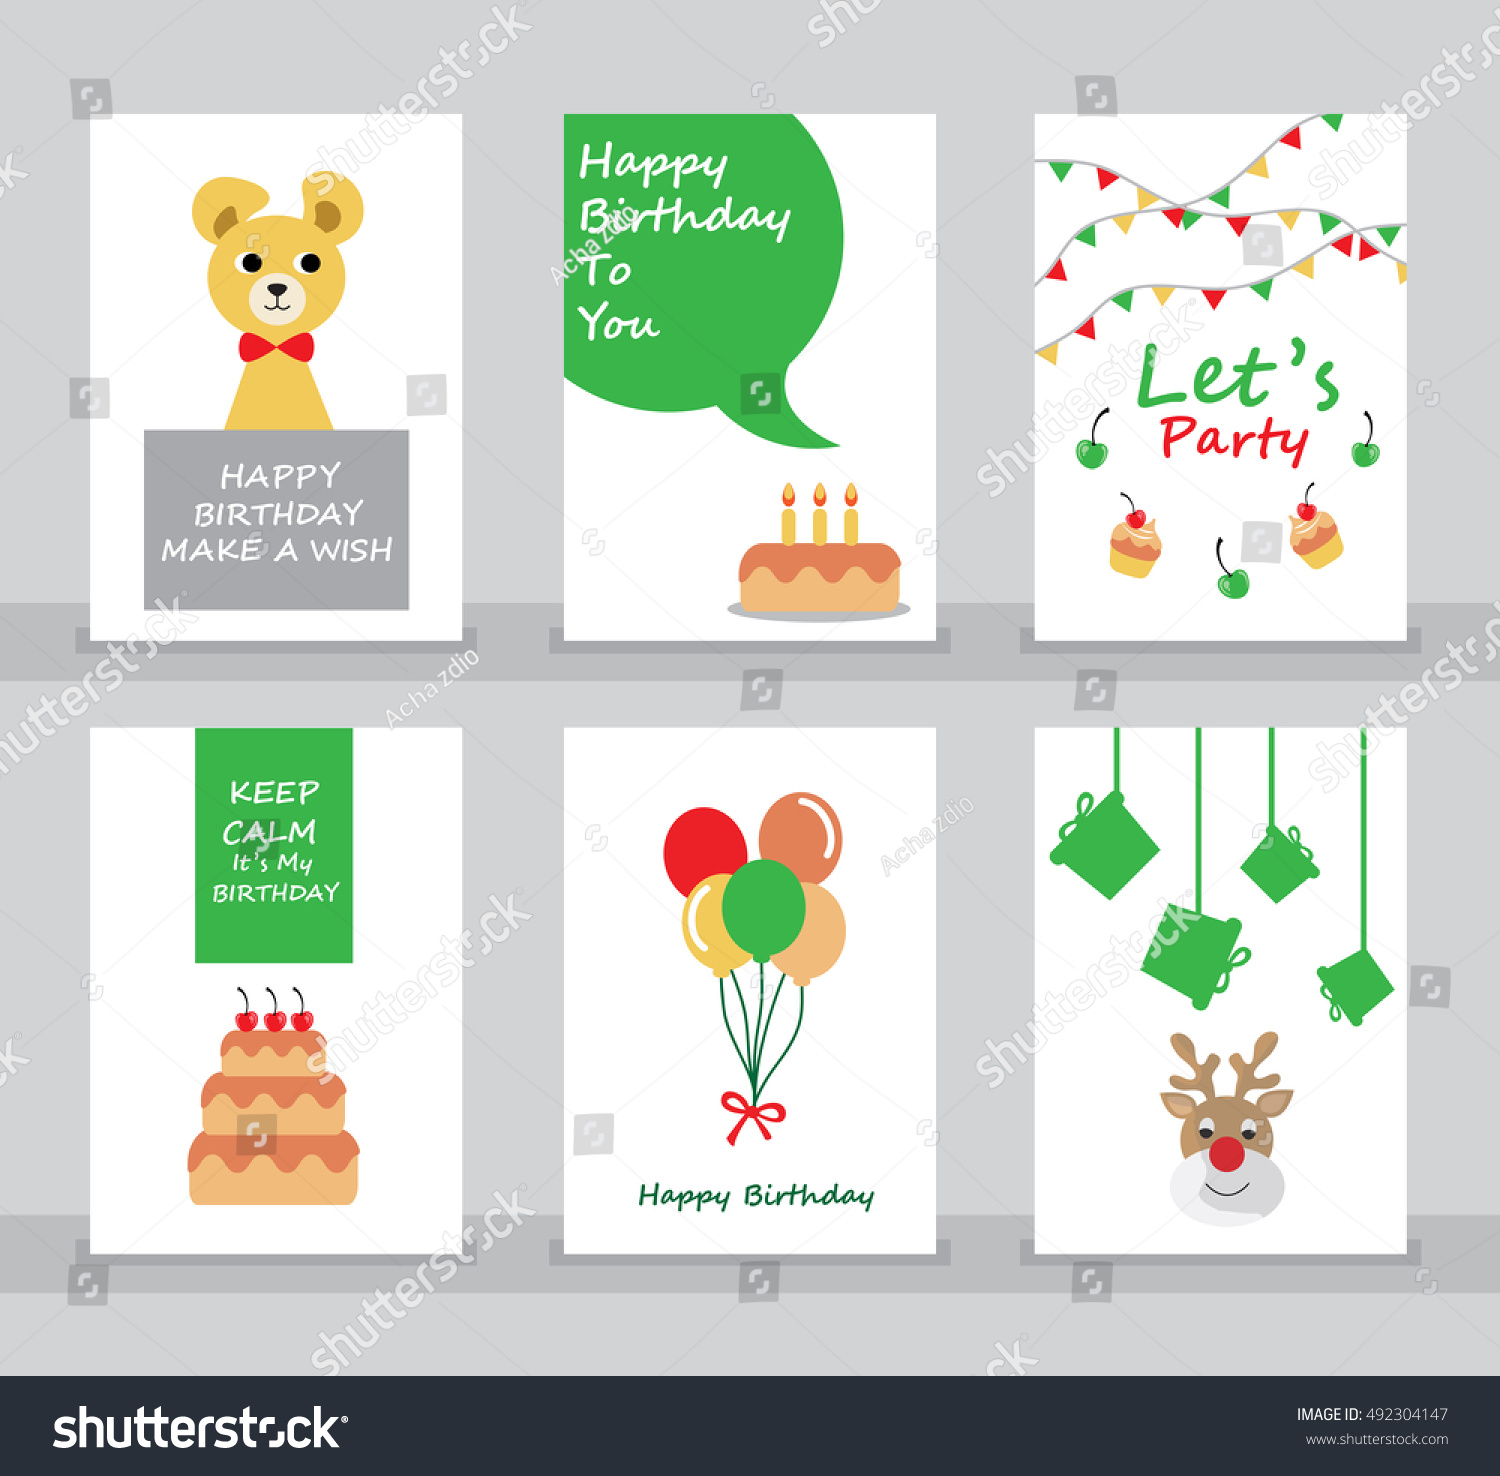 happy birthday merry christmas clip art ; stock-vector-happy-birthday-merry-christmas-greeting-and-invitation-card-there-are-teddy-bear-gift-boxes-492304147